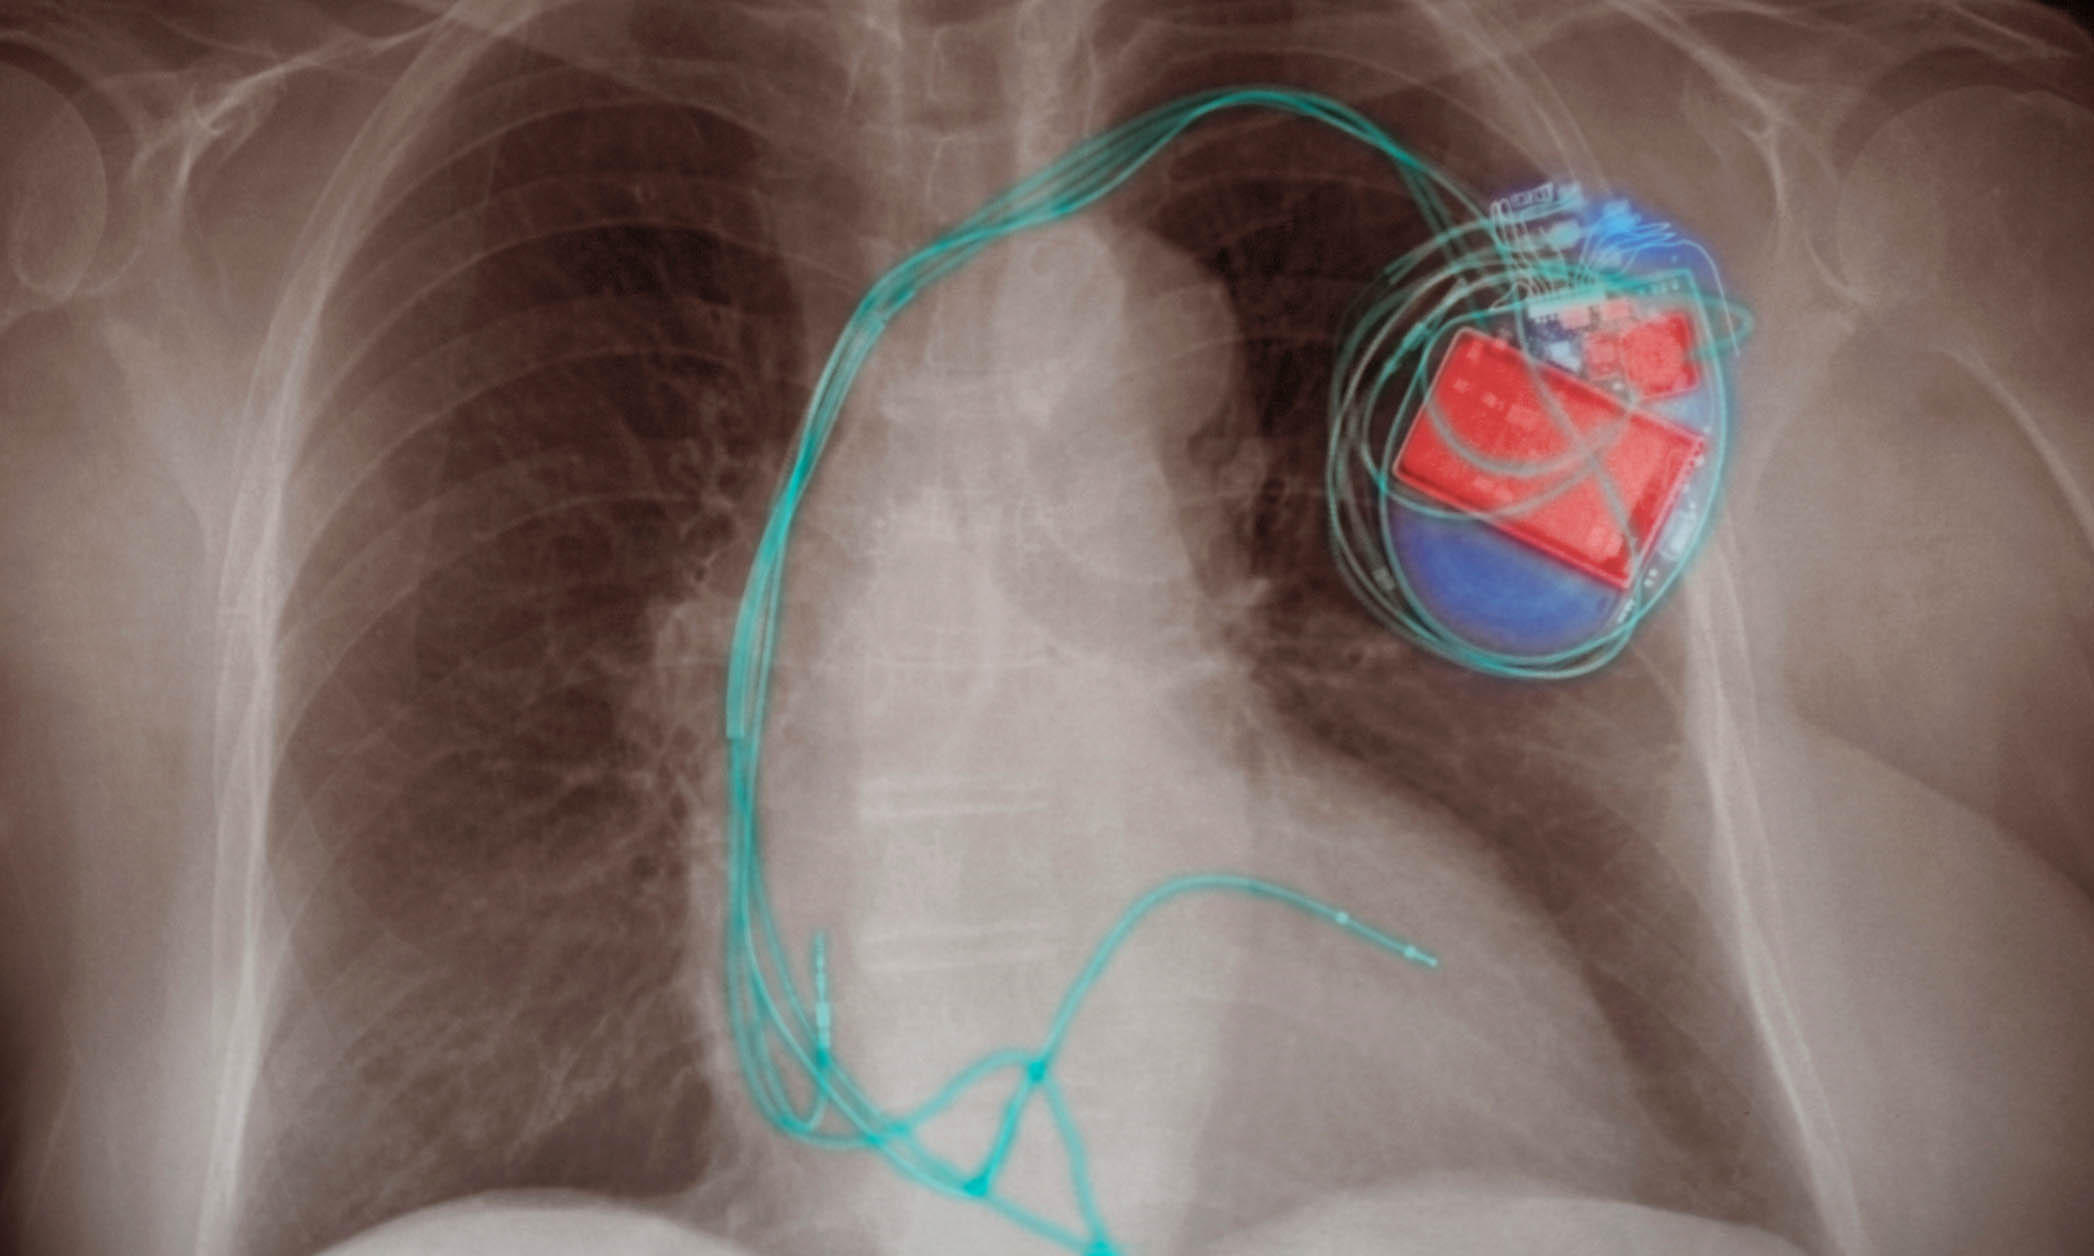 Chest X-ray showing an implanted paCemaker